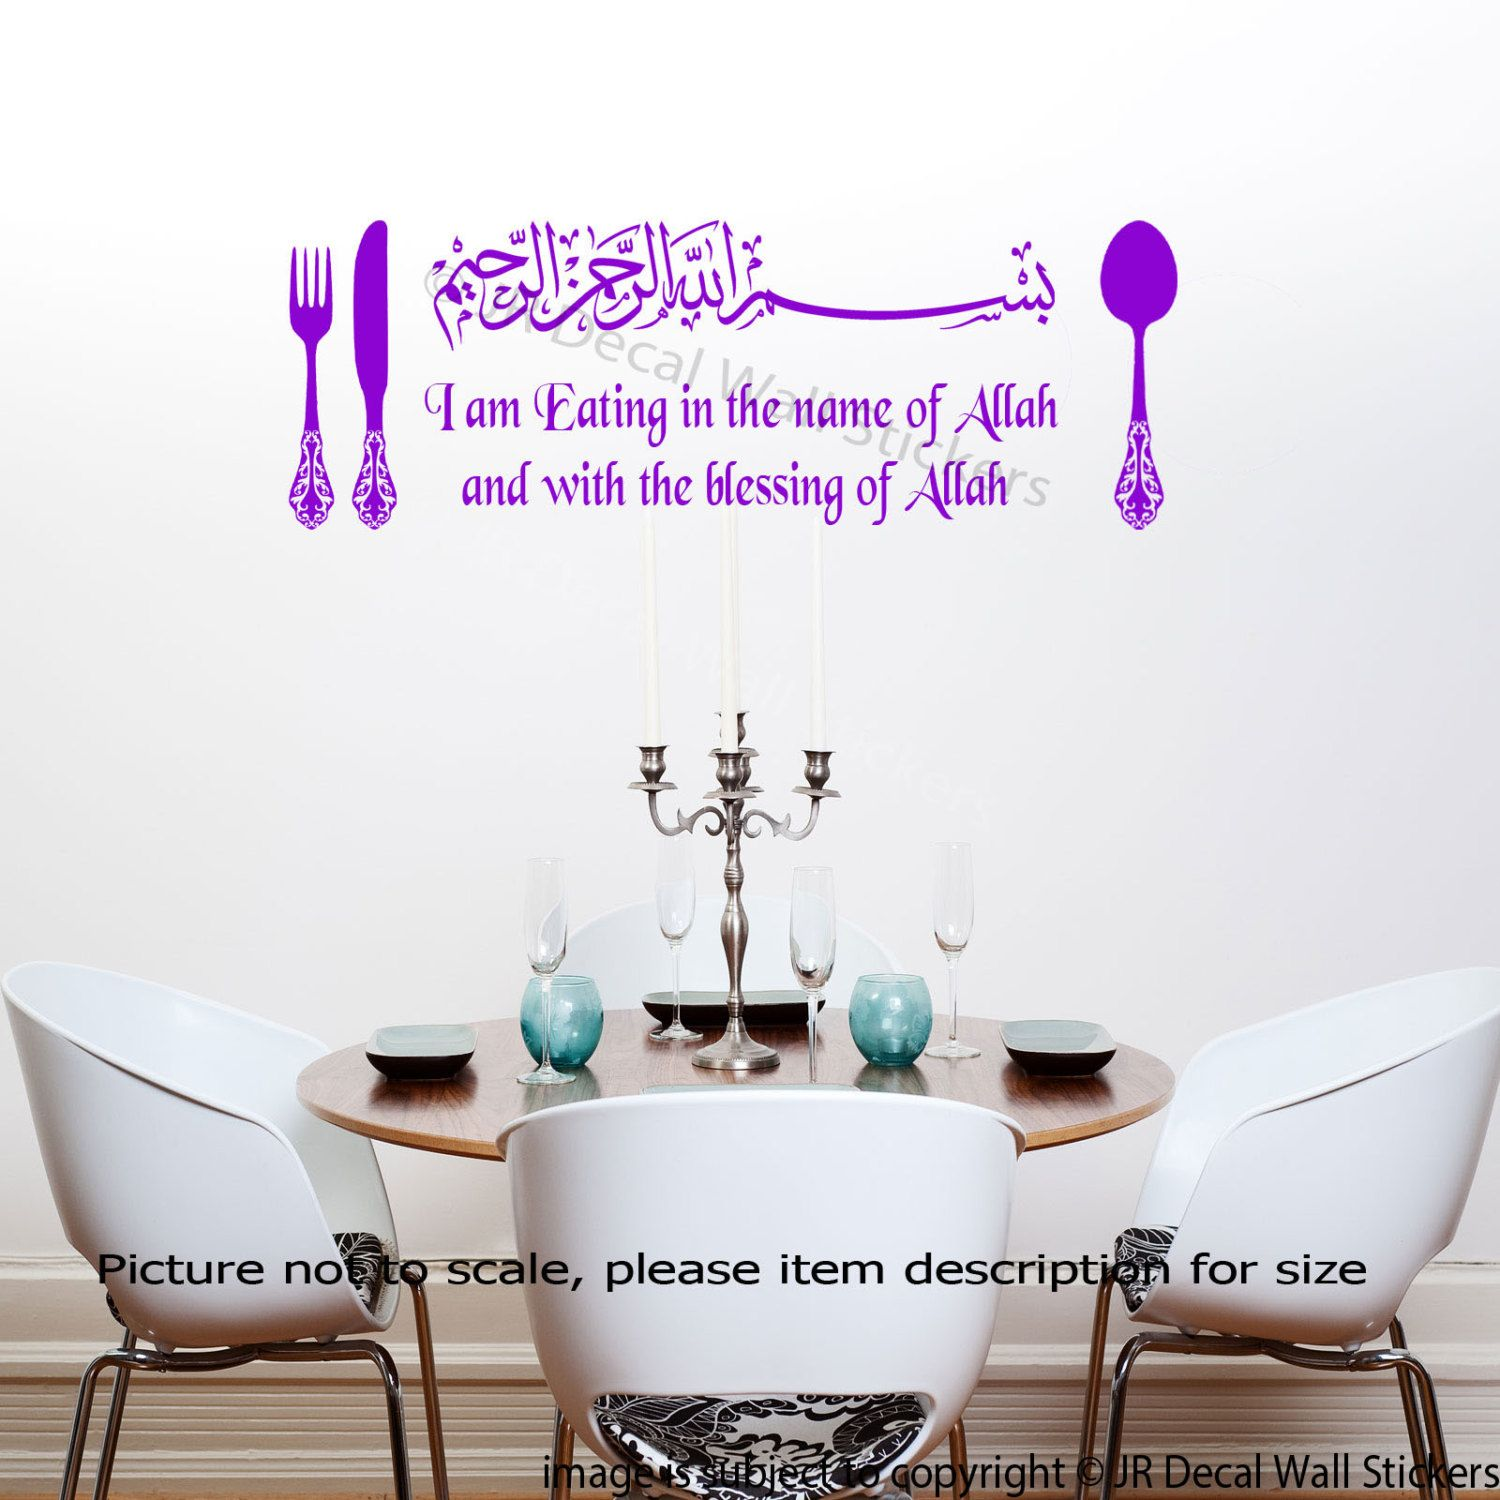 dining kitchen wall art stickers 'eating in the name of allah